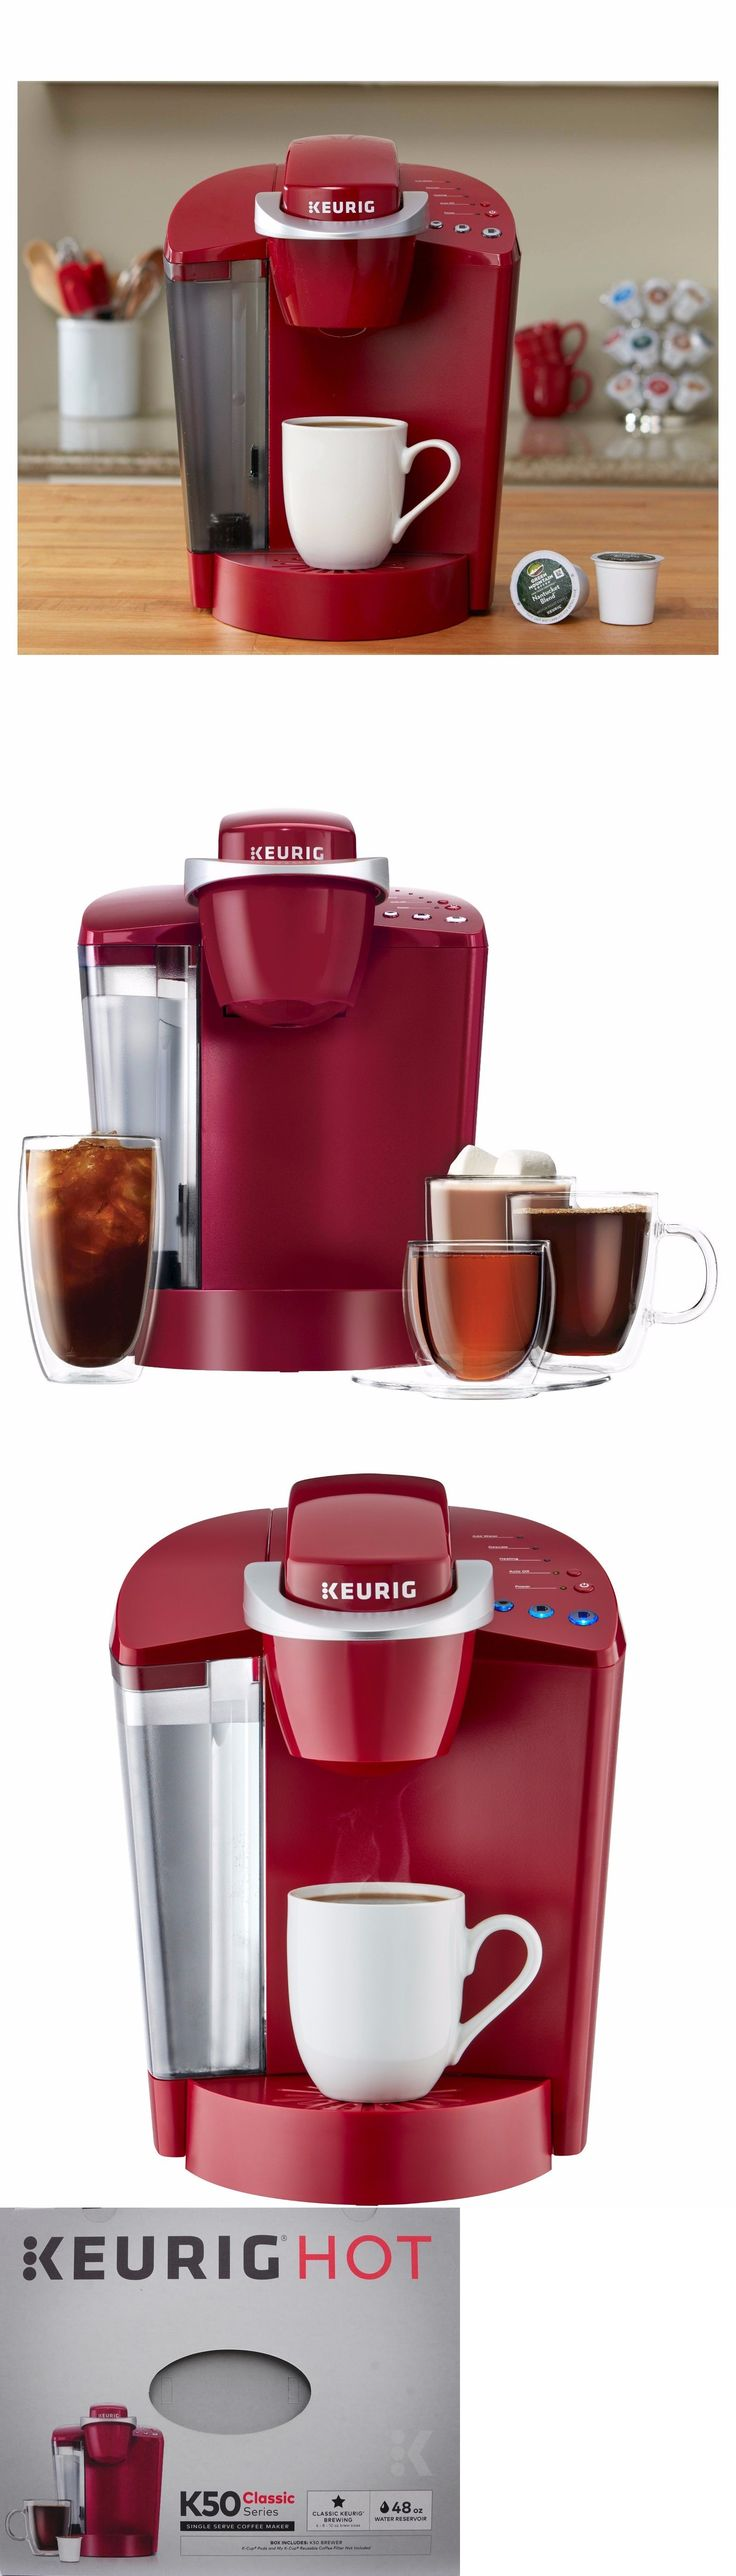 Single Serve Brewers 156775: New Keurig K55 Single Serve Coffee Maker Brand New Coffee Brewer-Single Cup Red -> BUY IT NOW ONLY: $85.65 on eBay!